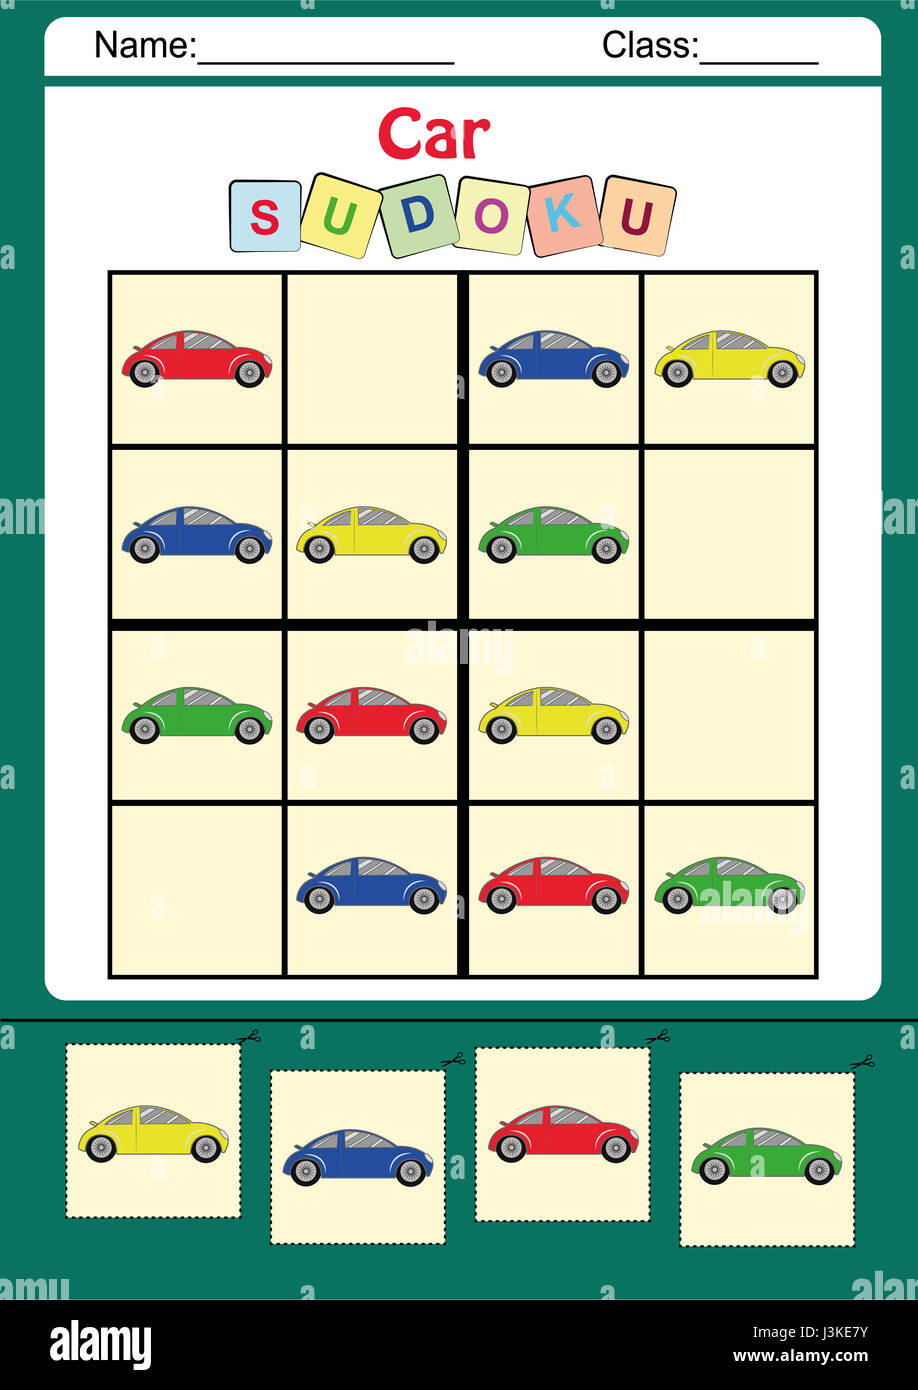 Funny picture sudoku for kids Stock Photo: 139955199 - Alamy